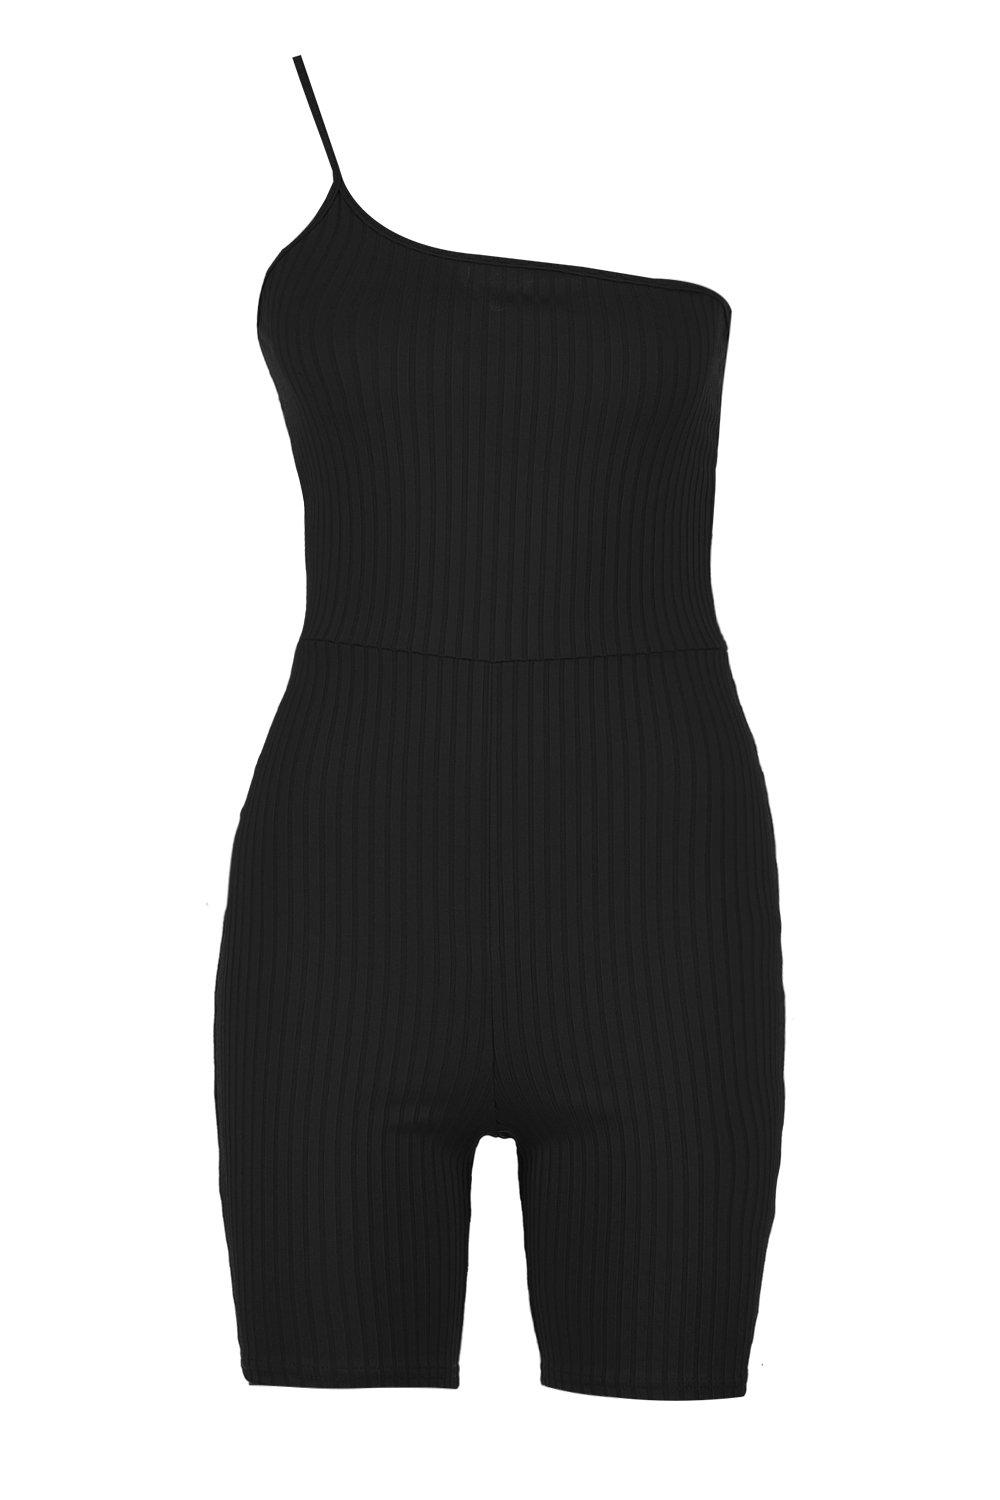 Rib One Jumbo Shoulder black Unitard 6xEZzq